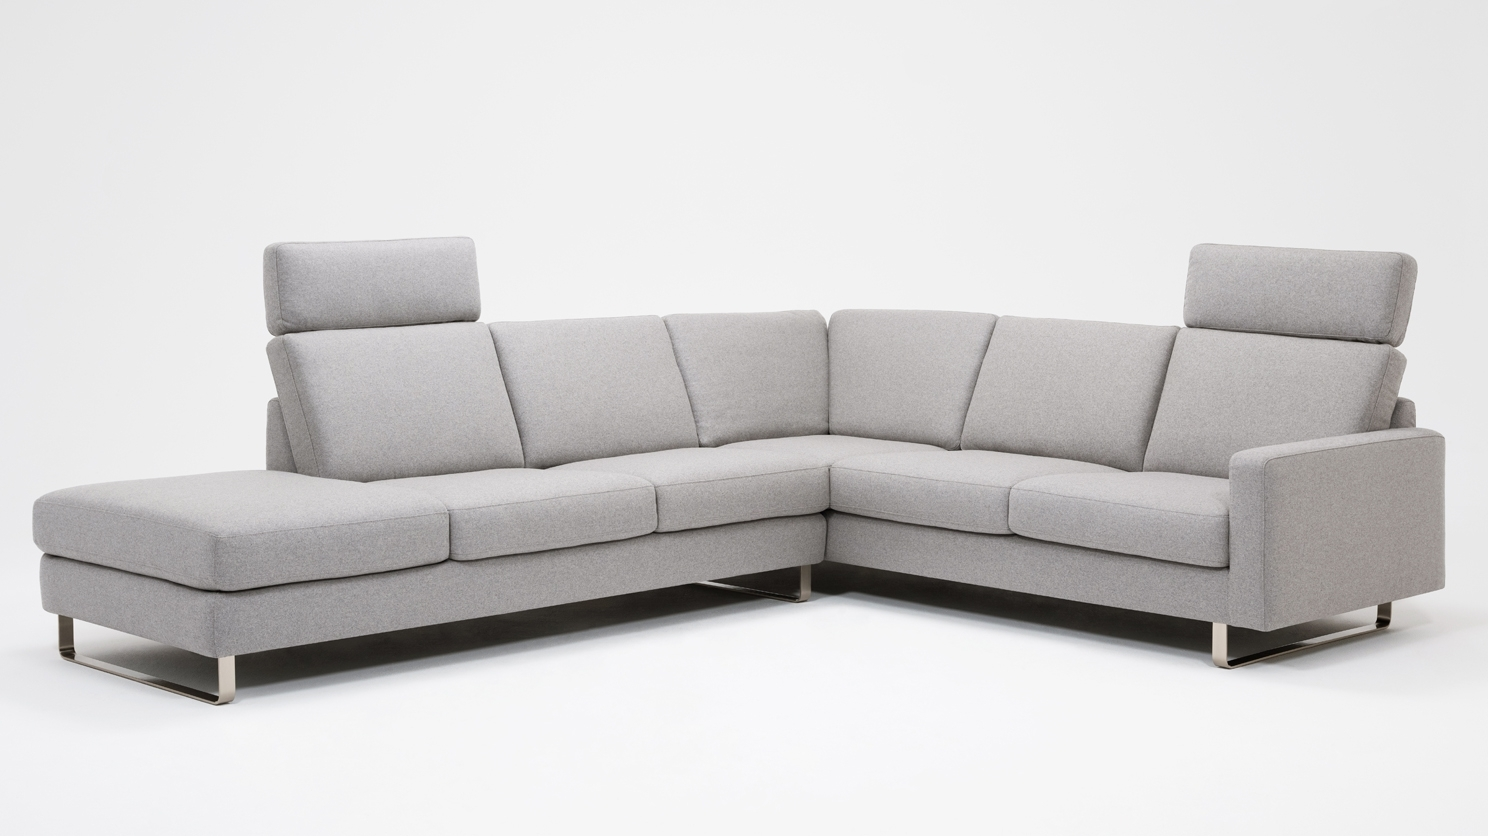 Oskar 2 Piece Sectional Sofa With Headrests – Fabric (View 13 of 20)